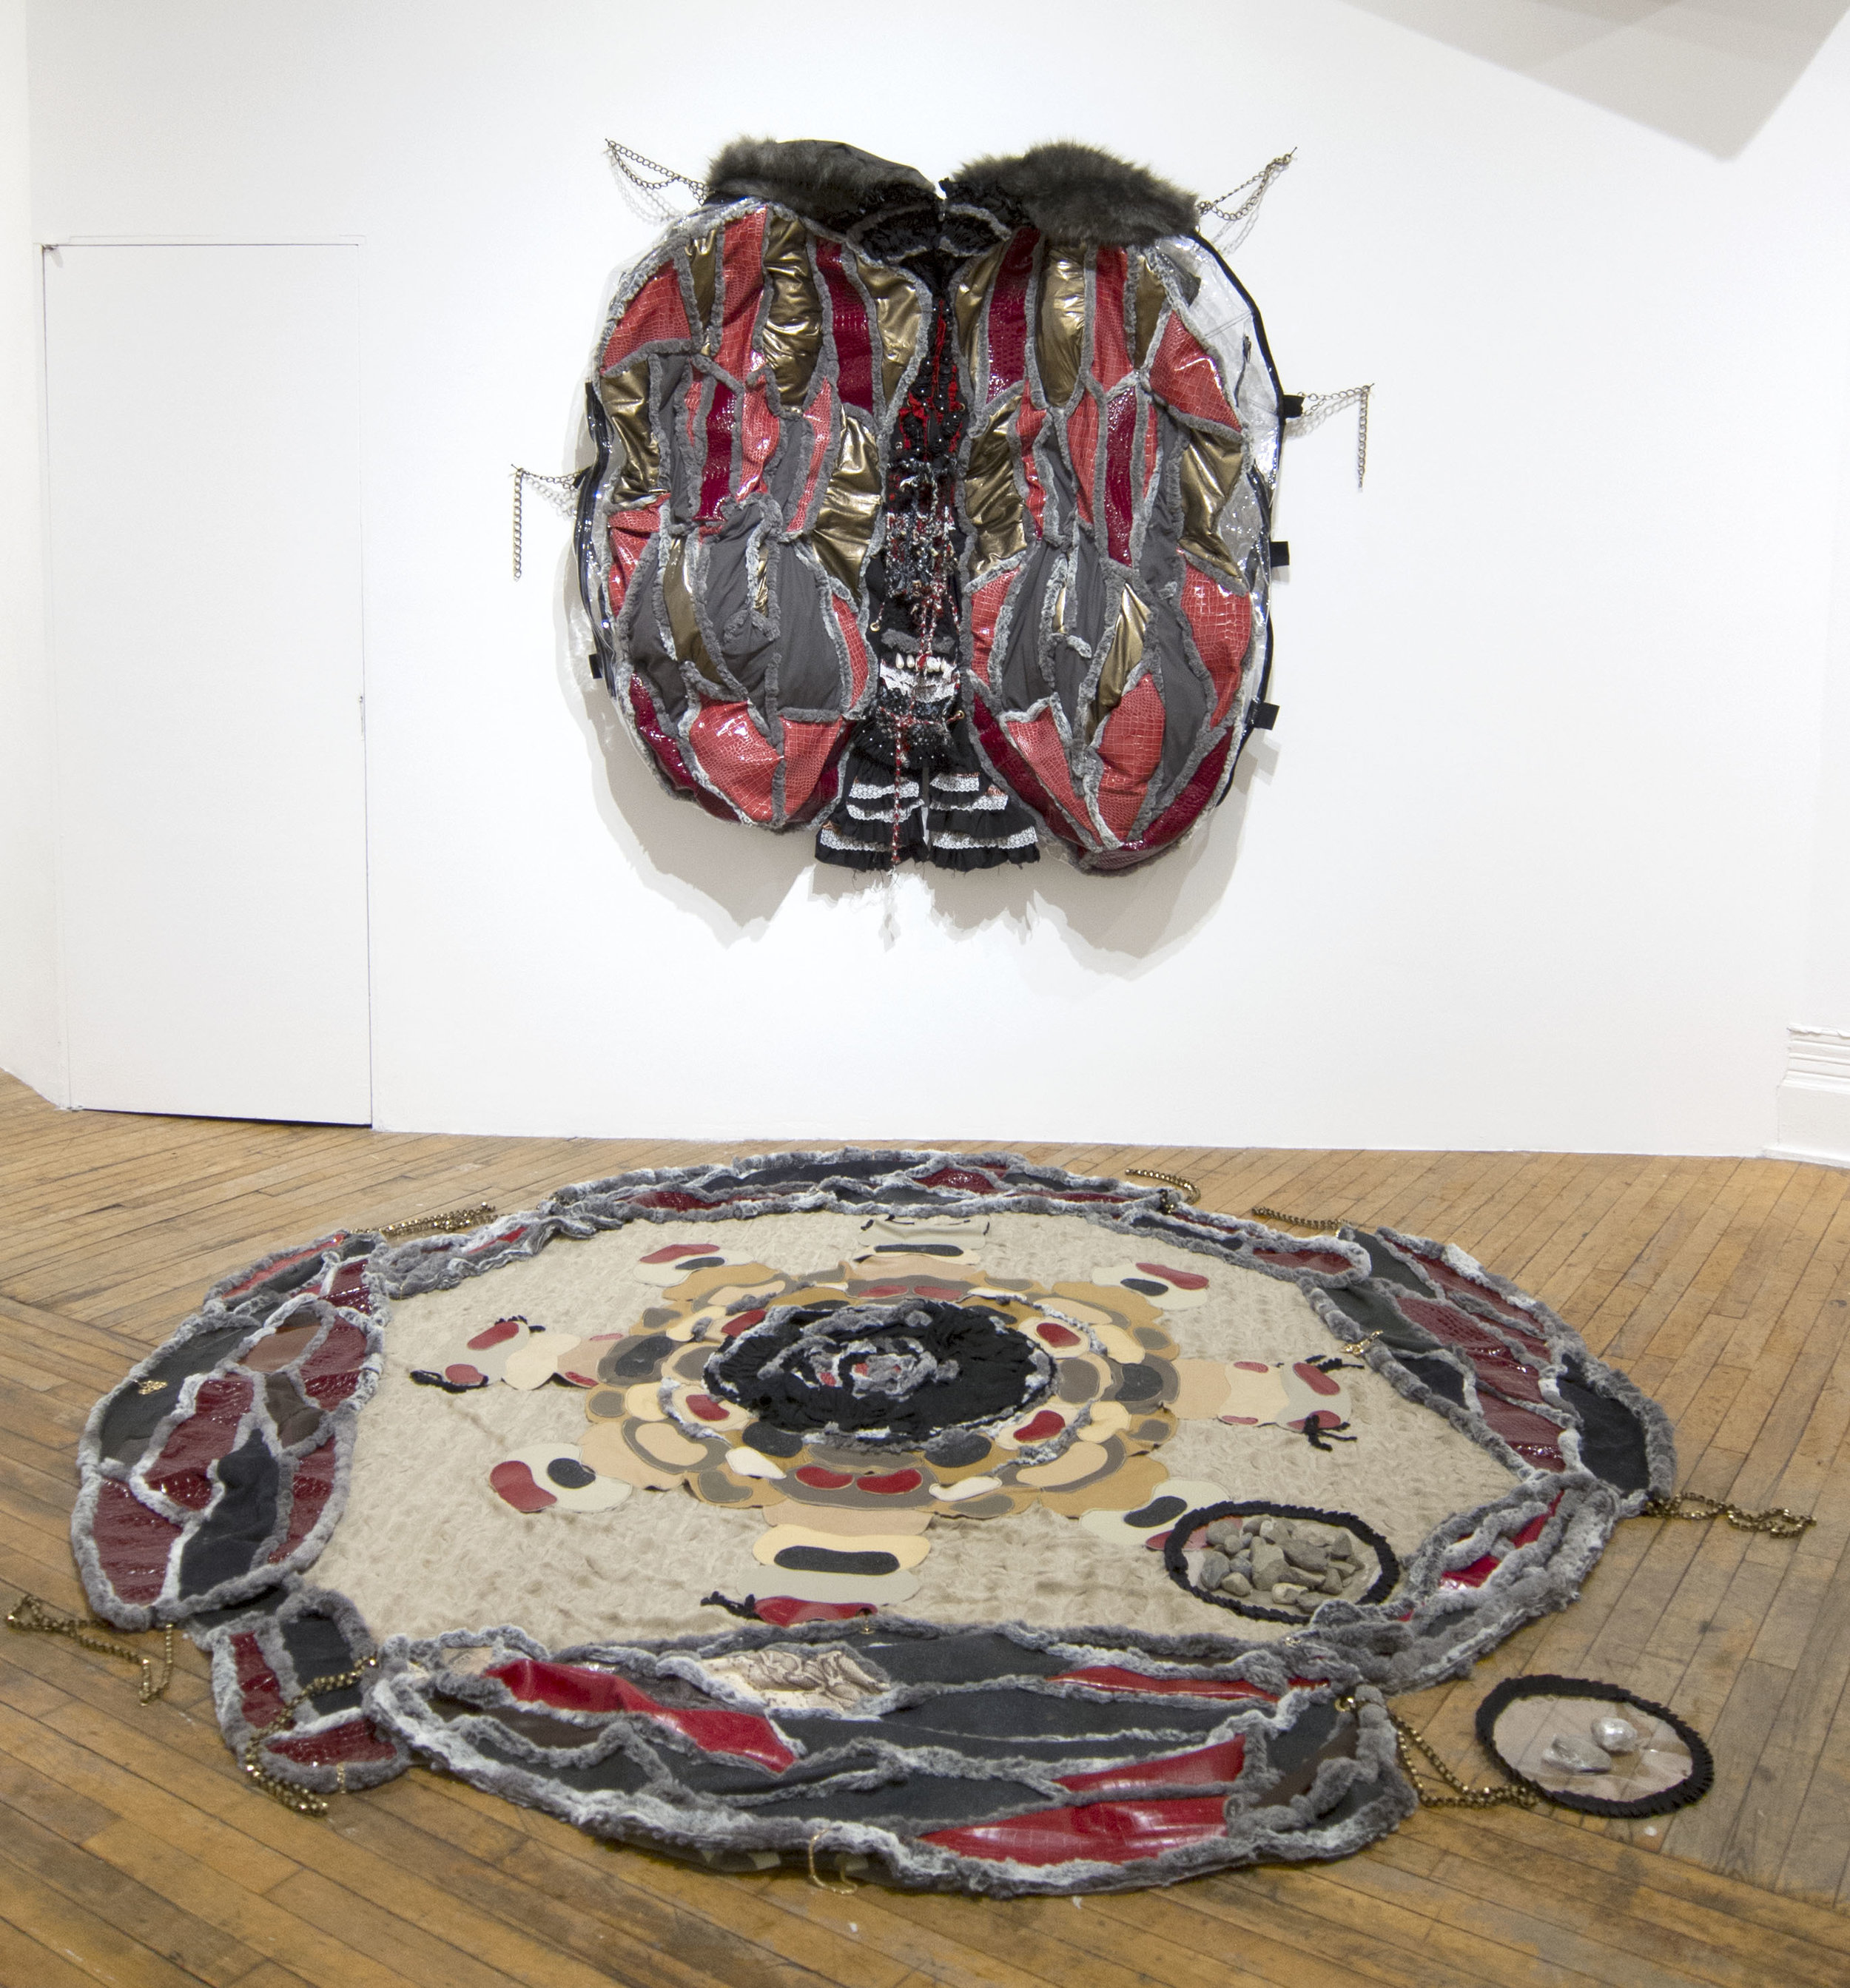 """Shed-wings Storage , Mixed media installation, Dimensions variable (70""""x54""""x7""""/Floor piece: 110"""" diameter), 2018  A part of the installation """"PIPORNOT's Superorganism."""""""